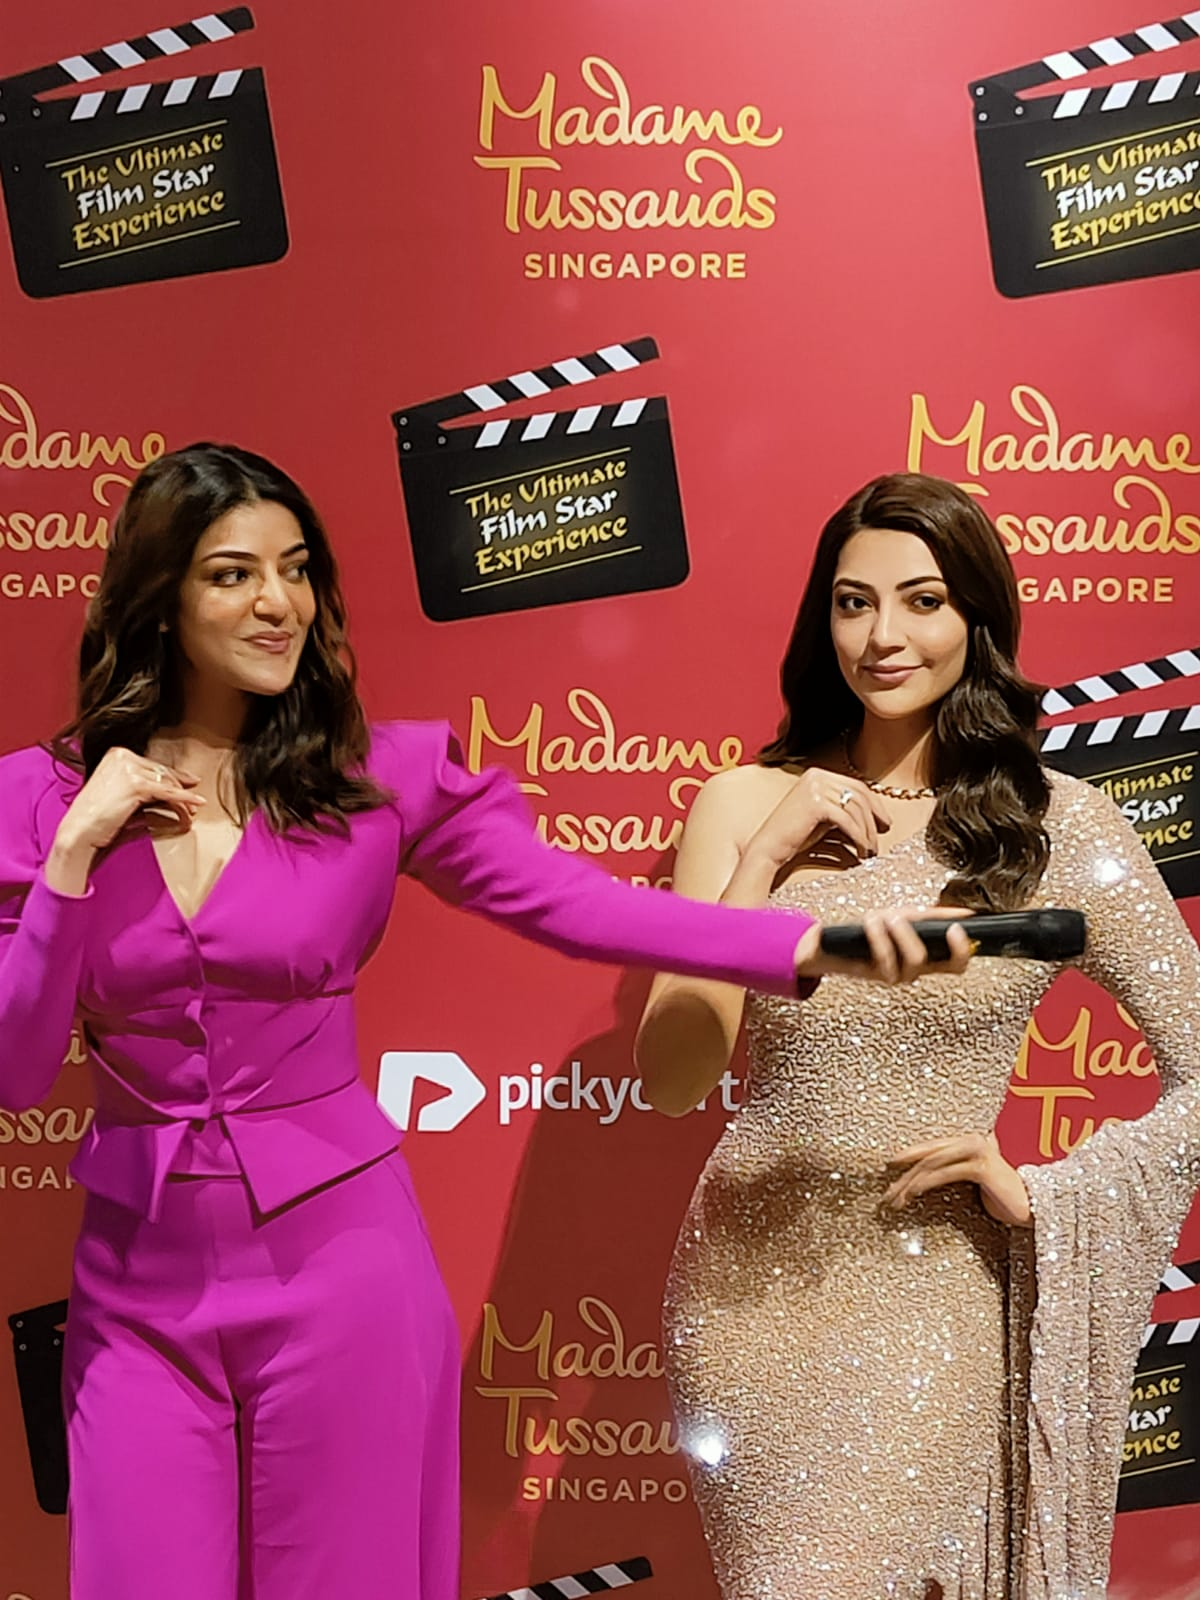 The bubbly Kajal Aggarwal interacted enthusiastically with the media and fans and even spoke a few words in Tamil, at the unveiling of her wax statue at Madame Tussaud's Singapore which was attended by her family and friends who had specially flown in for the occassion. Photo: Connected to India